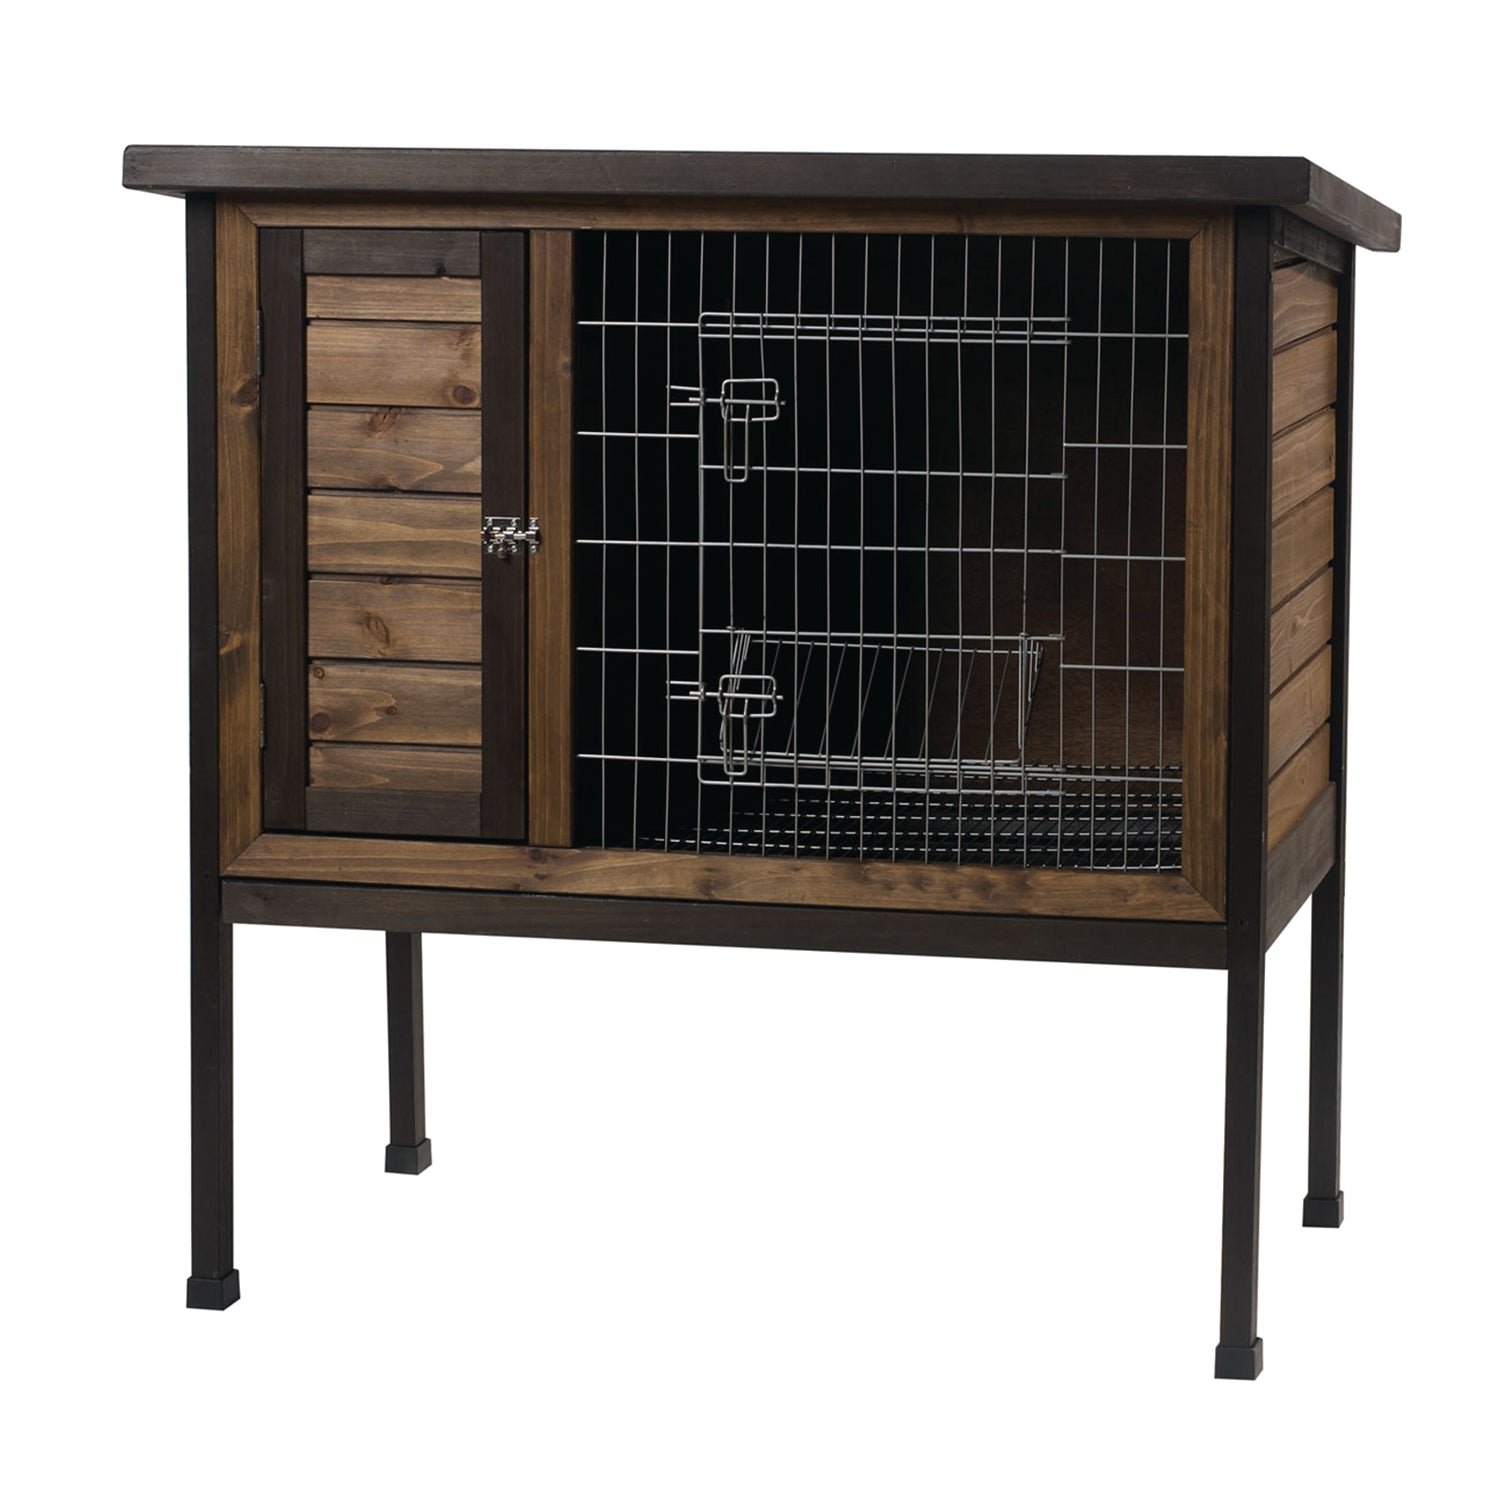 Kaytee Premium One Story Rabbit Hutch